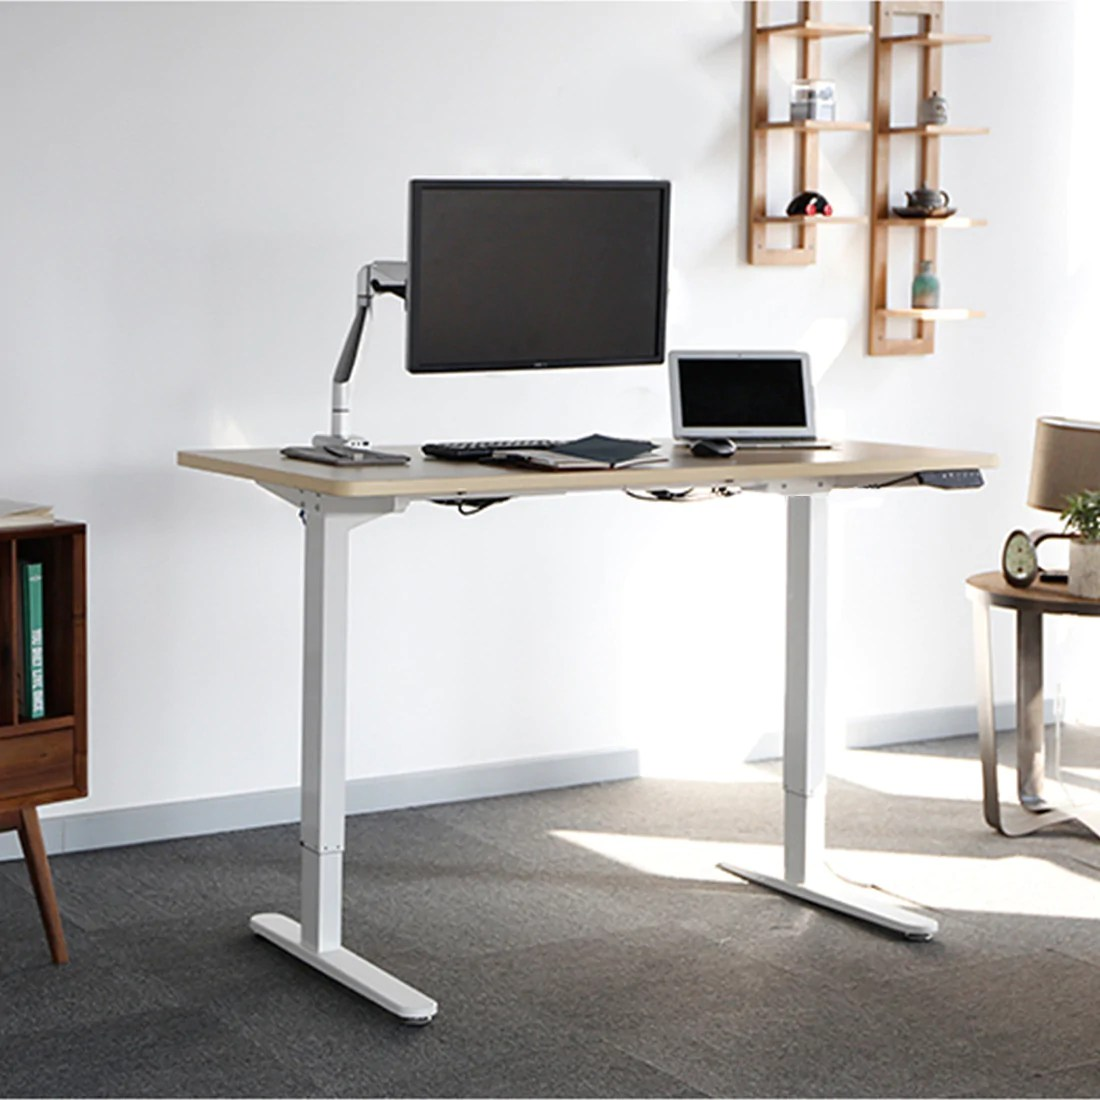 Thingy Club E2B Height Adjustable Electric Standing Desk